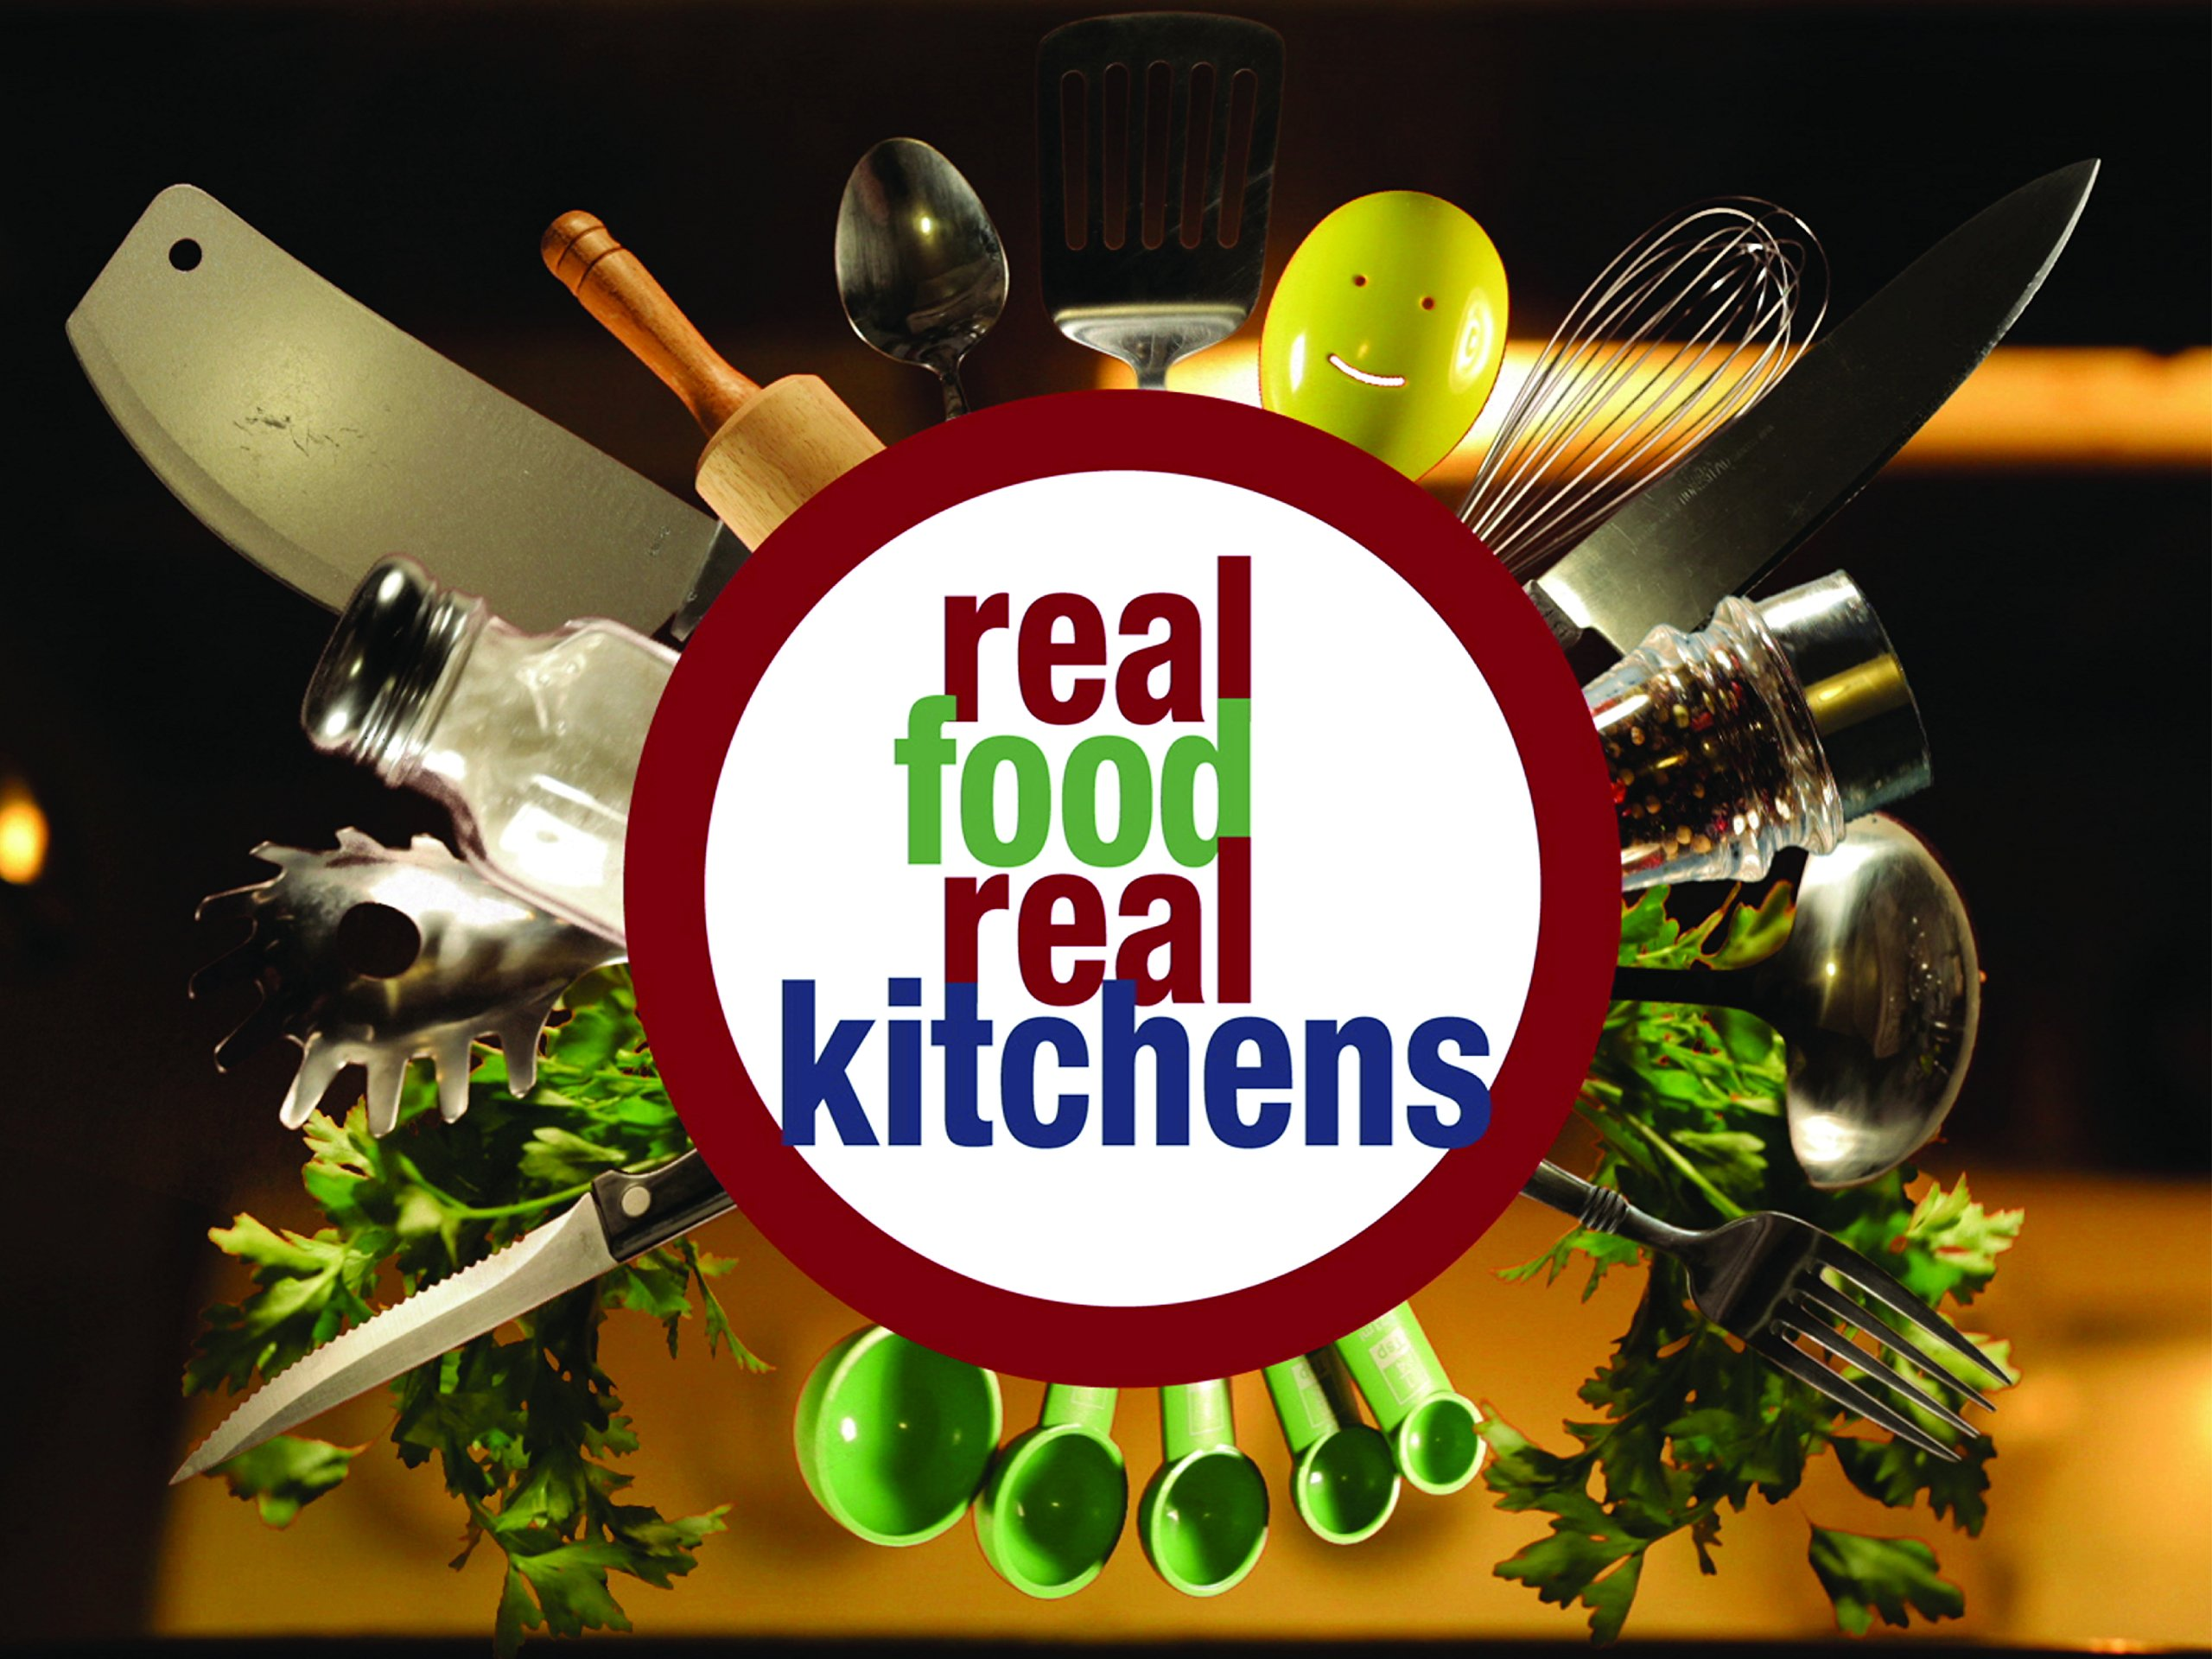 Real Food Real Kitchens - Season 2